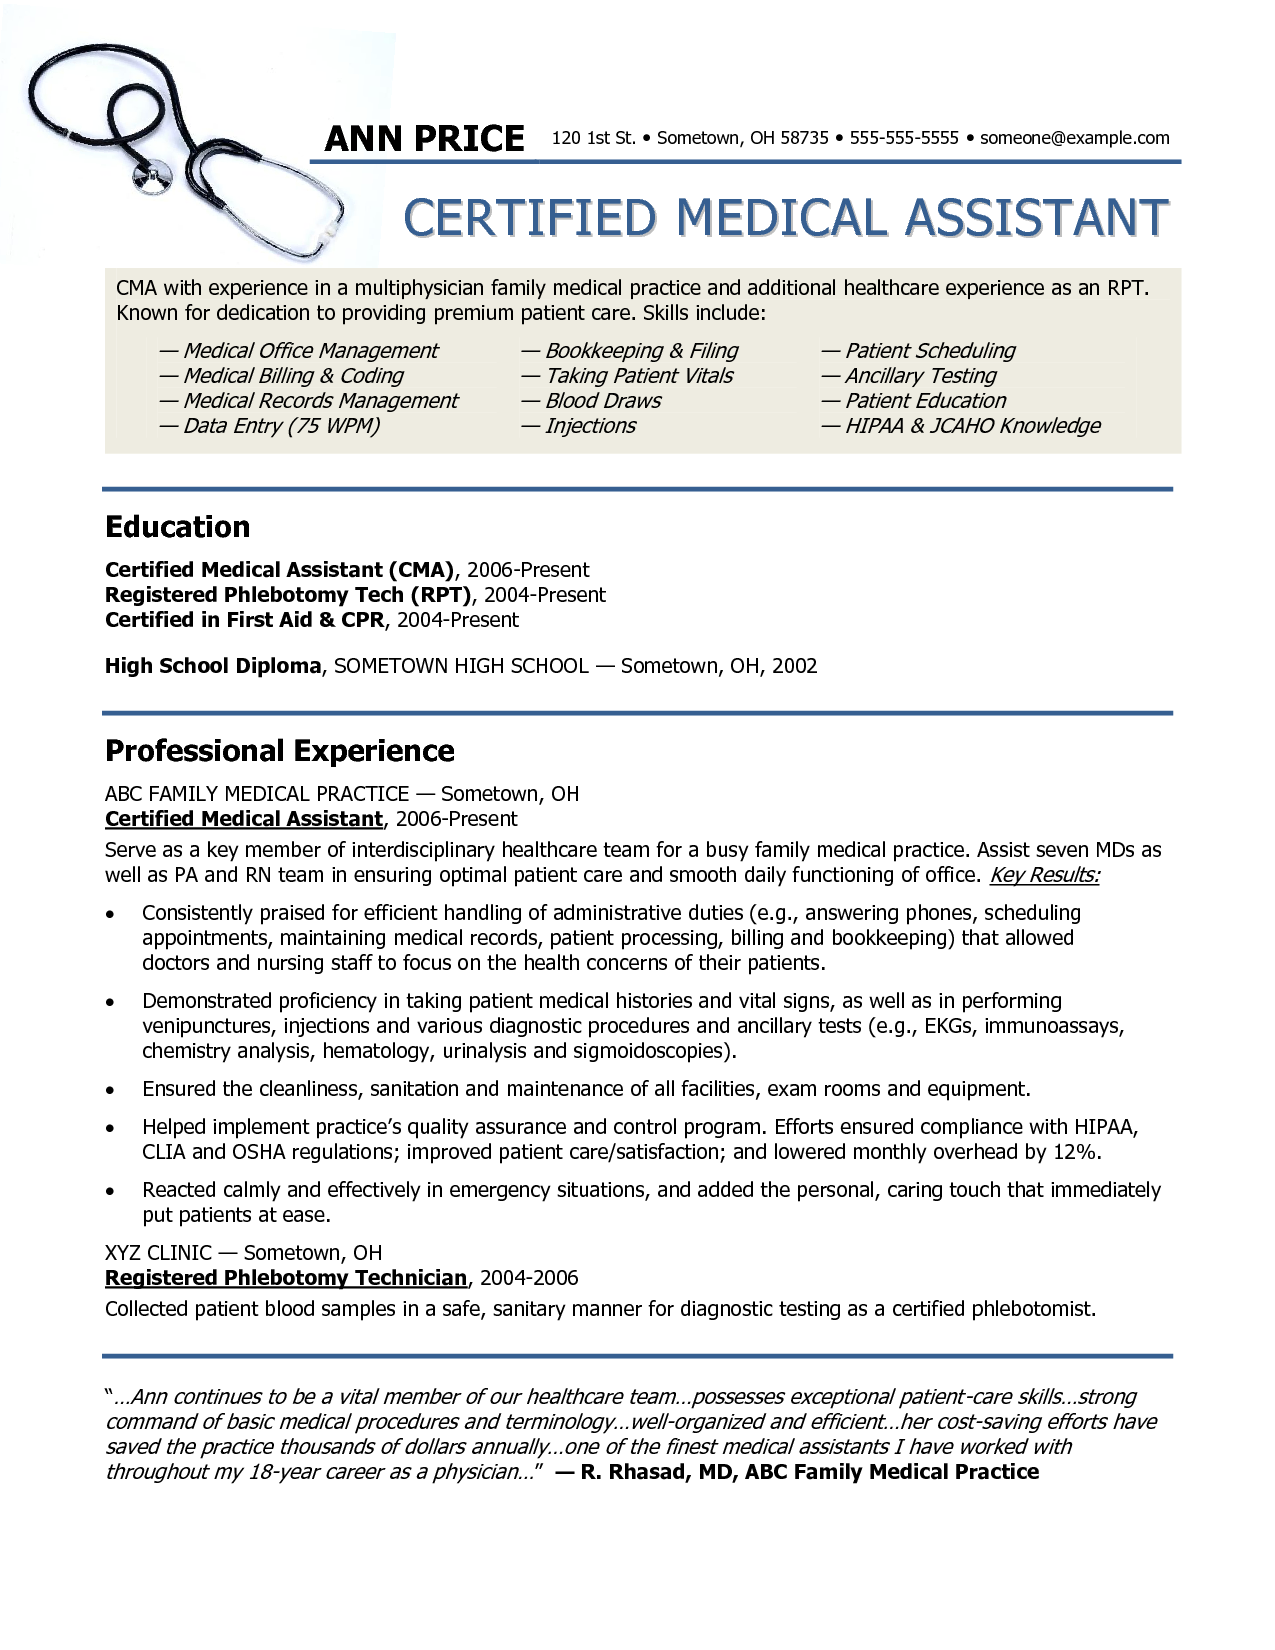 resume examples example of medical assistant resume regular medical assistant medical assistant resume example - Sample Medical Assistant Resume